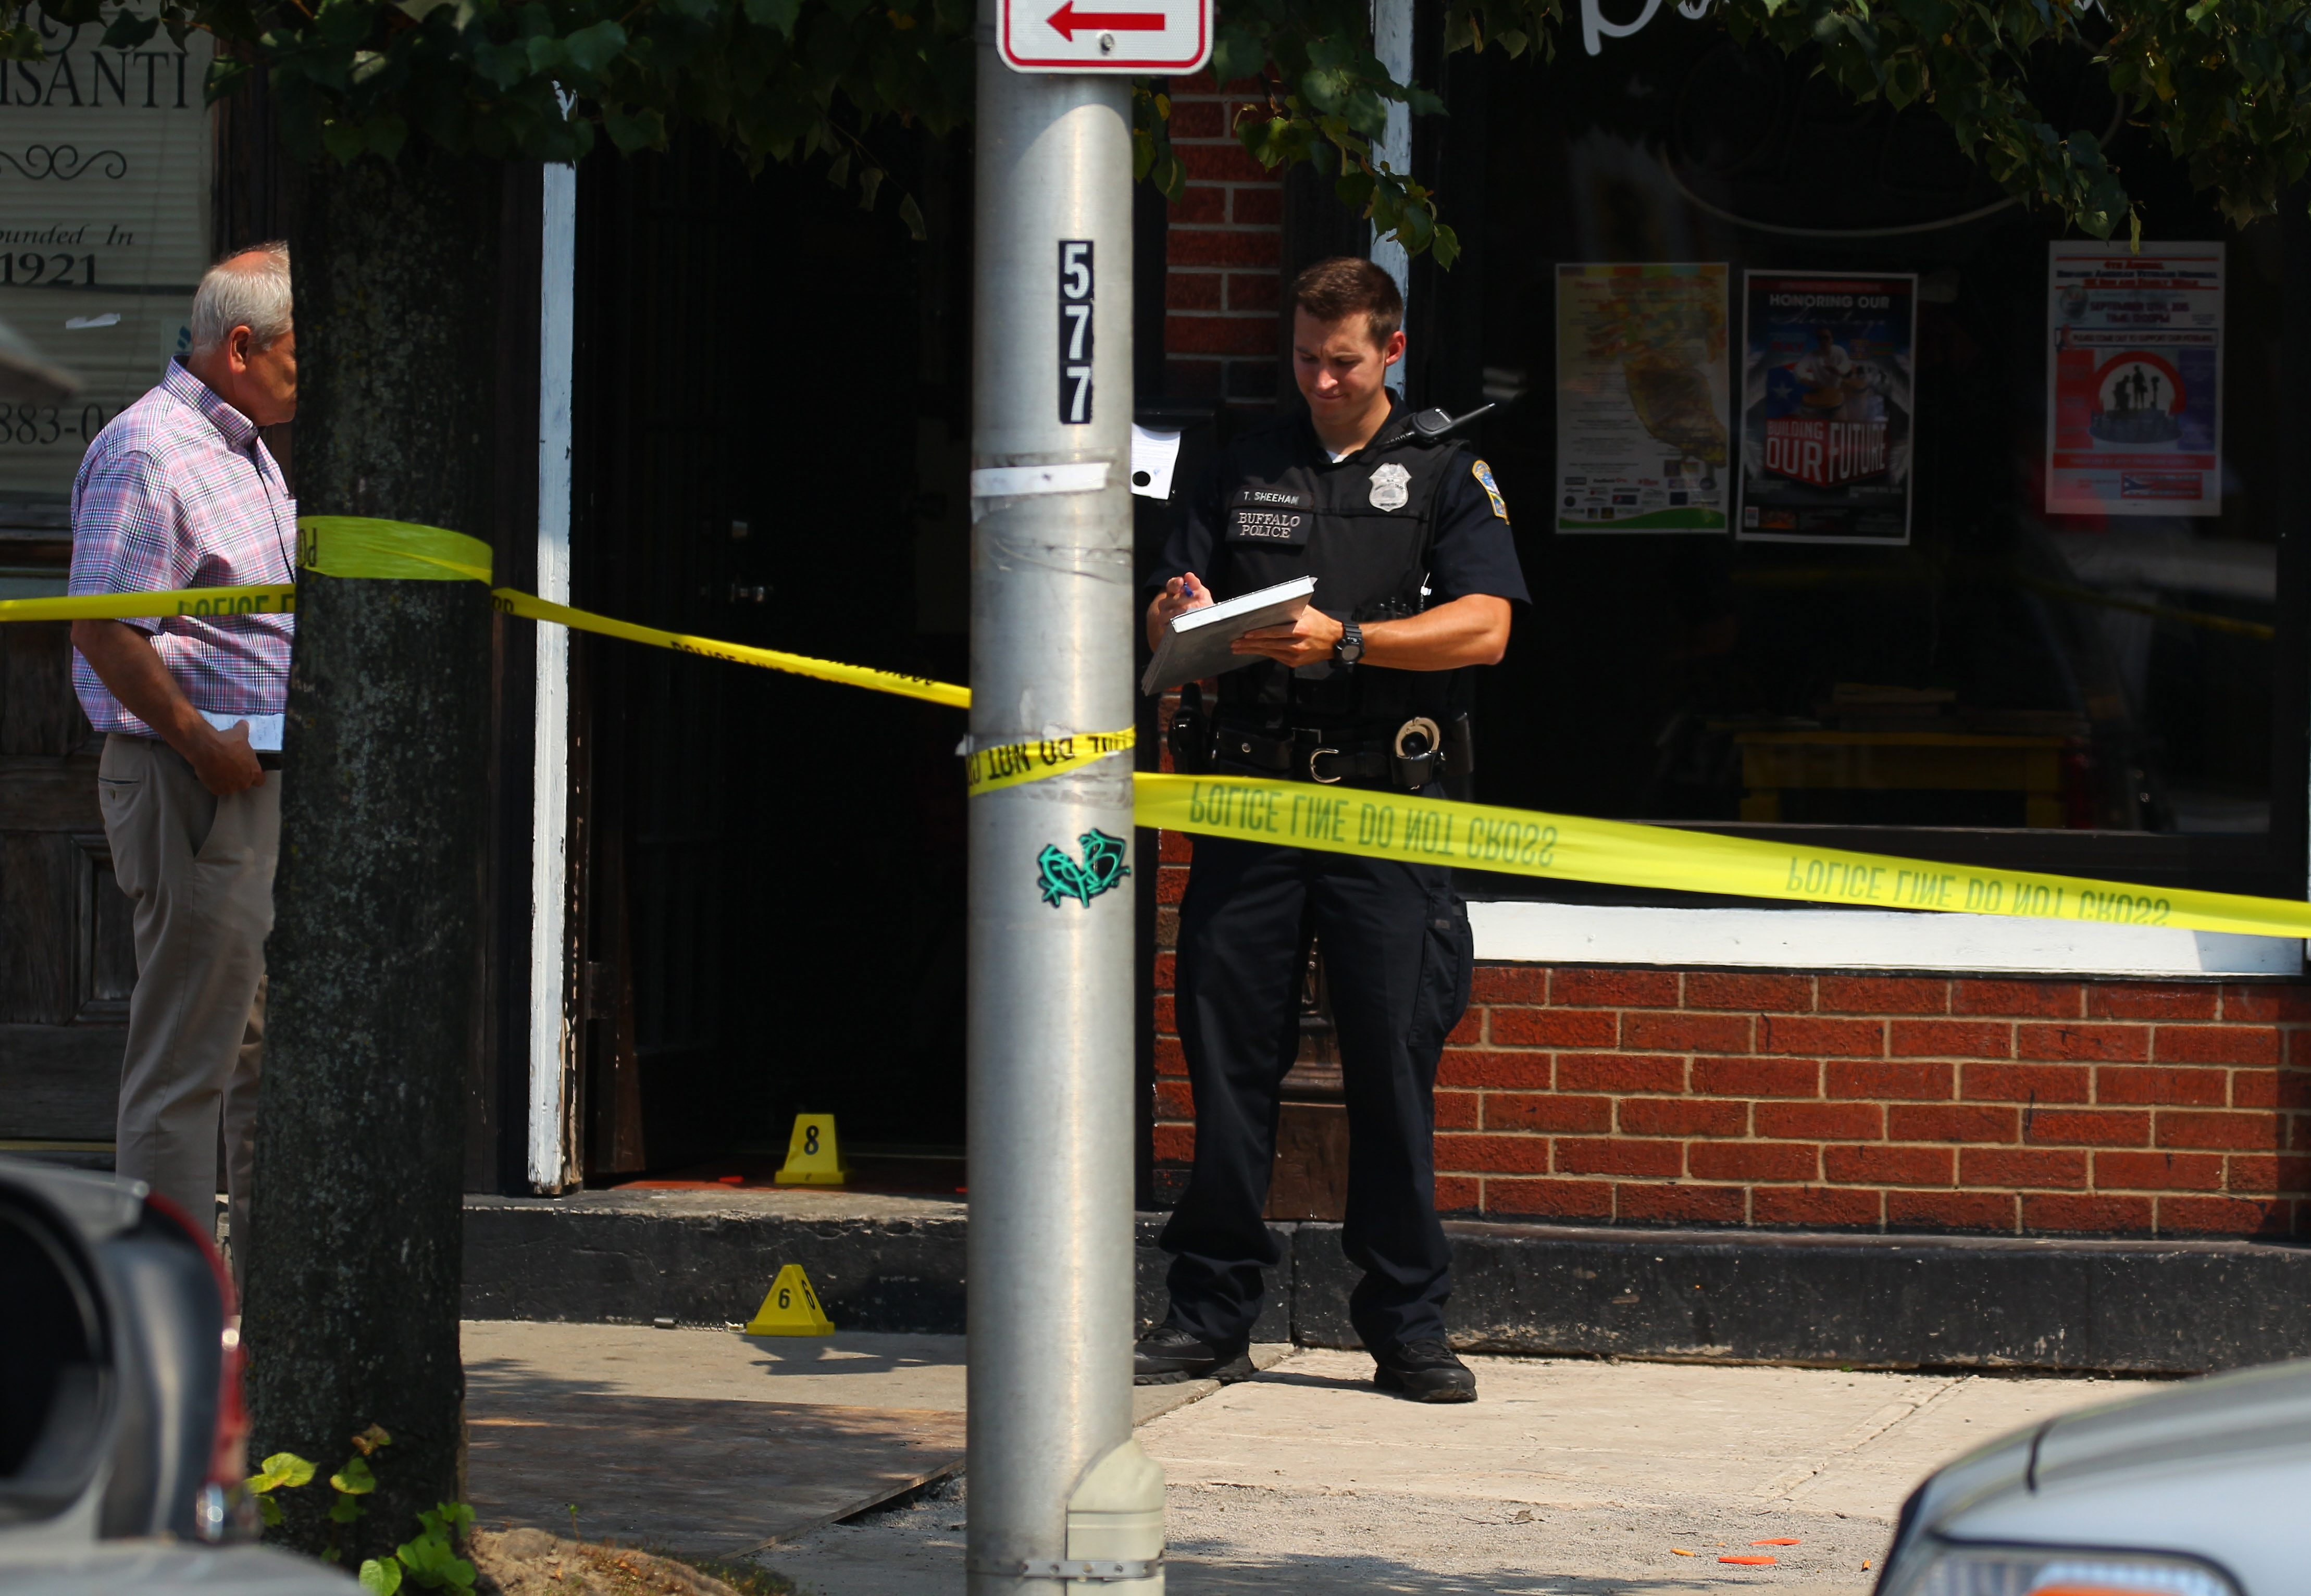 Police investigate outside a barbershop on Niagara Street where Juan Ortiz Santiago, 28, was fatally shot Tuesday.